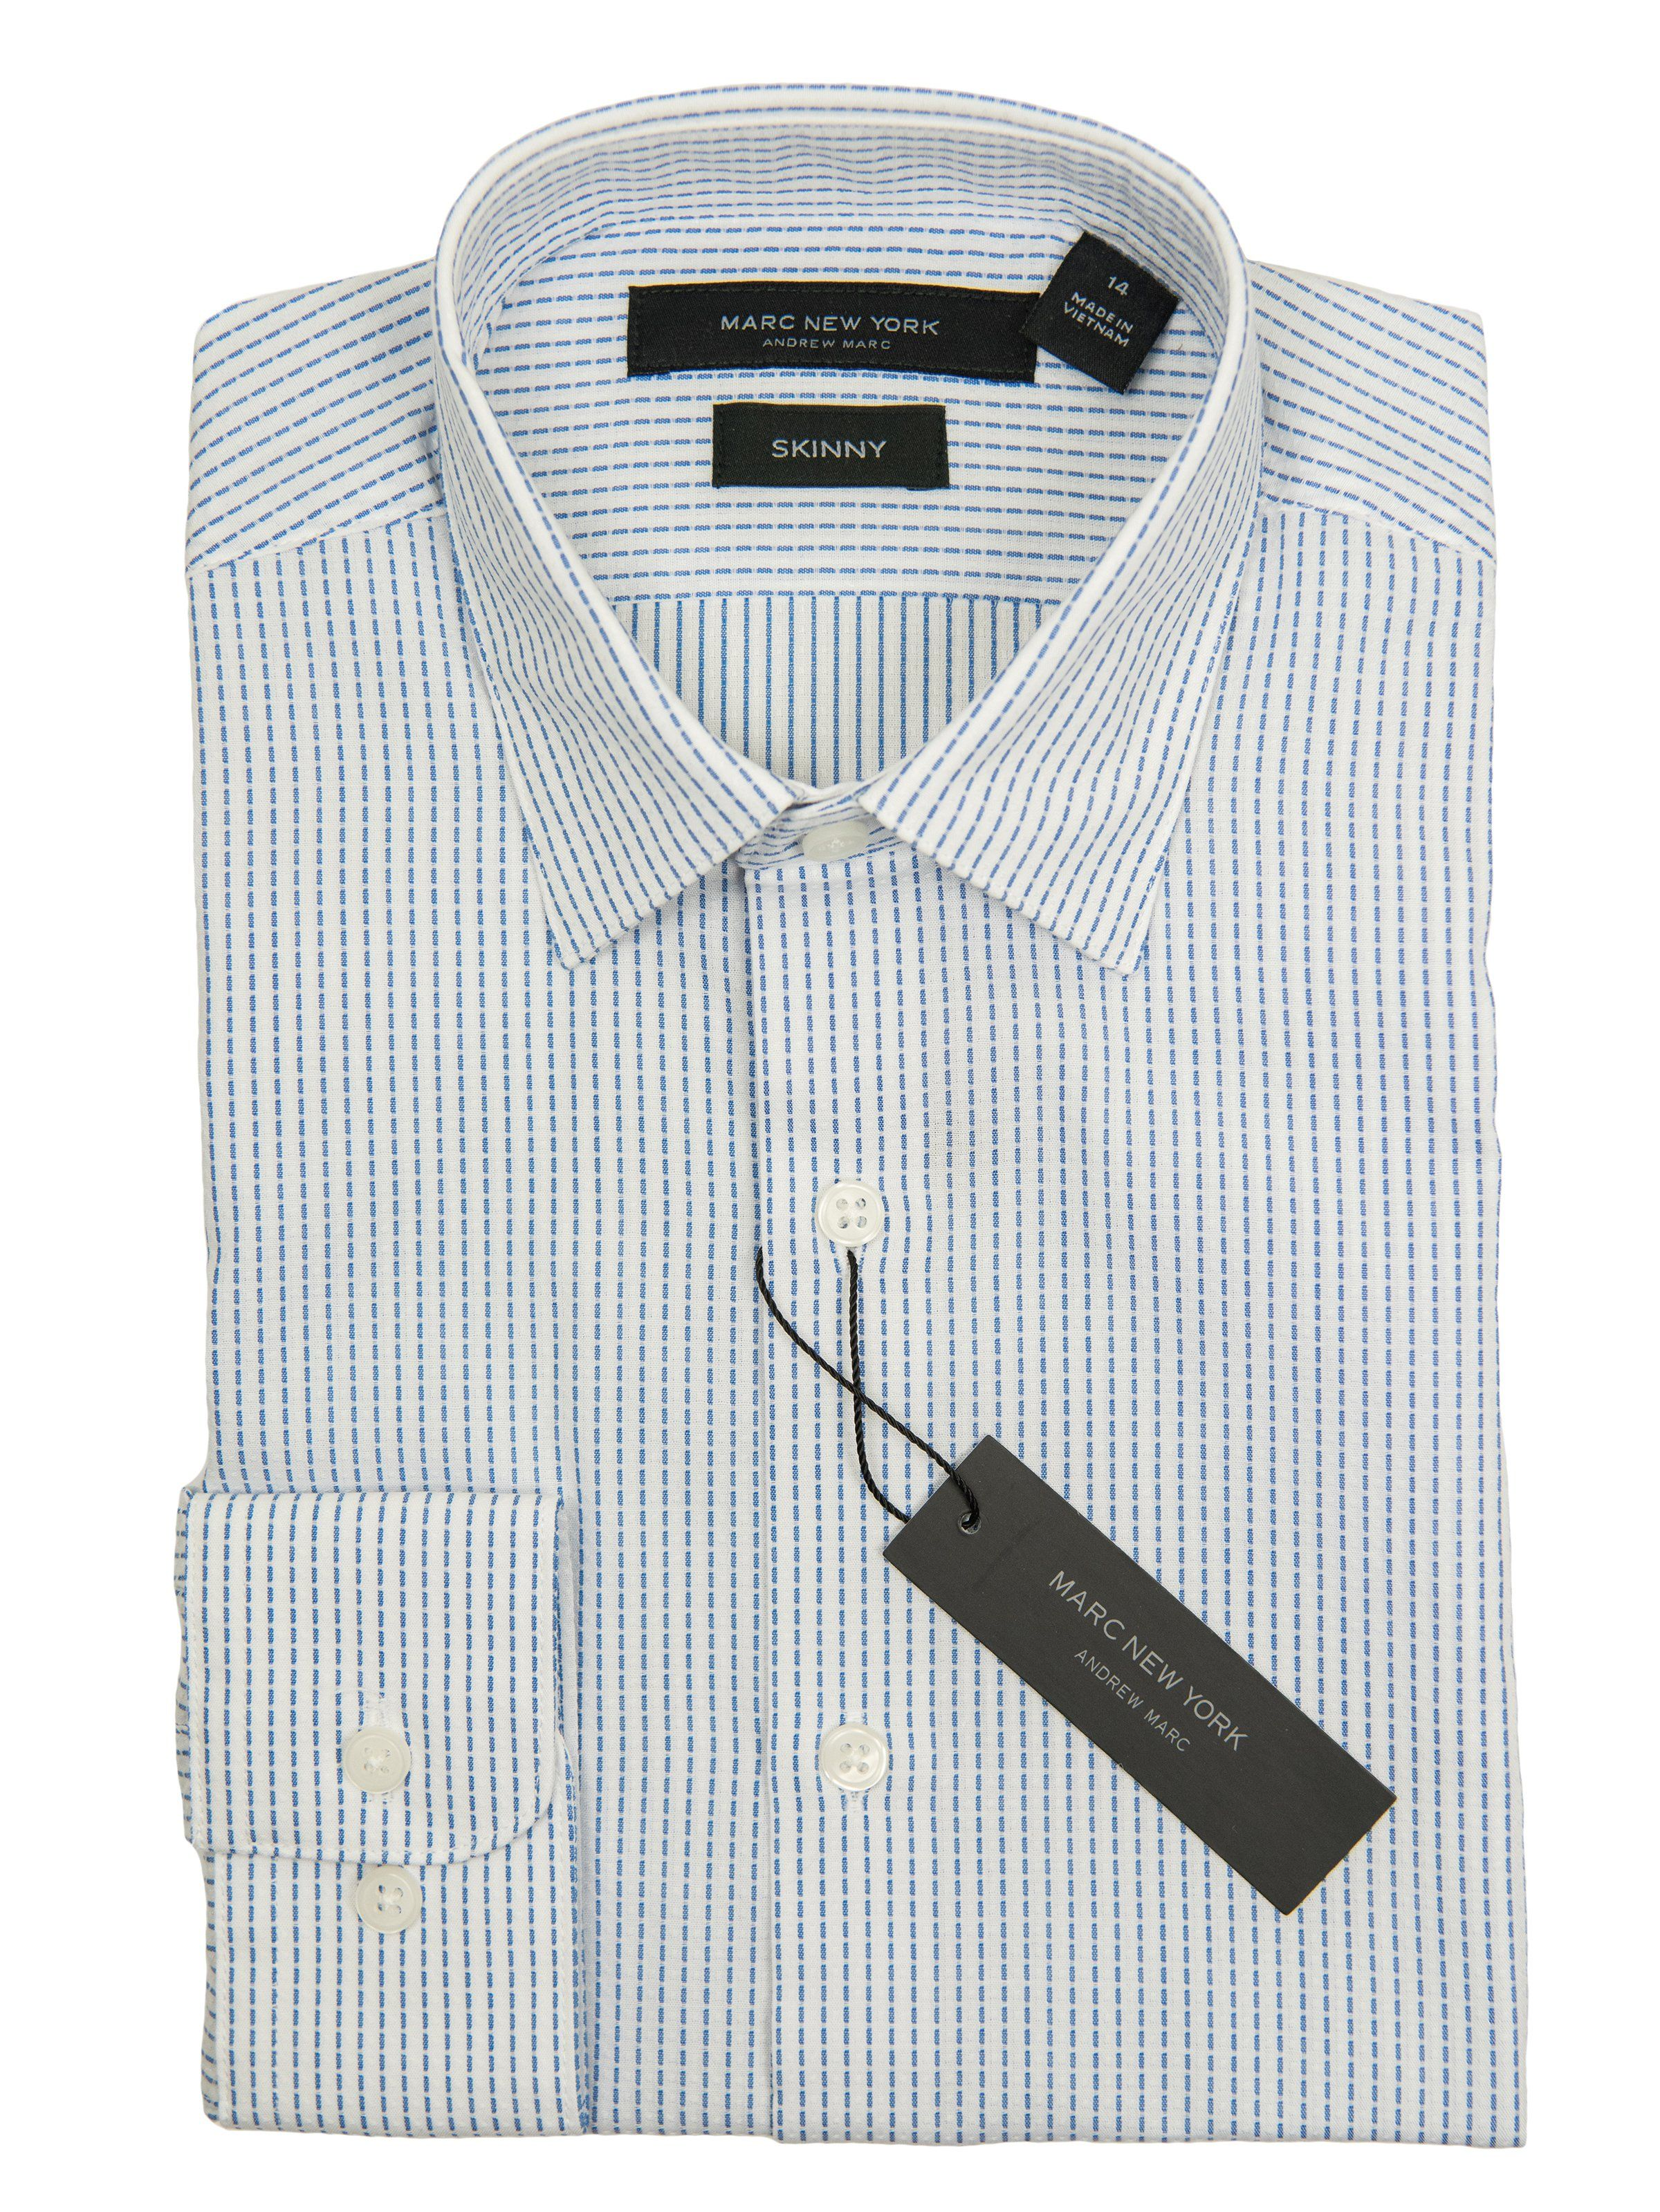 3443c8ac9b Andrew Marc 27370 Boy's Dress Shirt-White/Blue-Skinny Fit-Broken Stripe